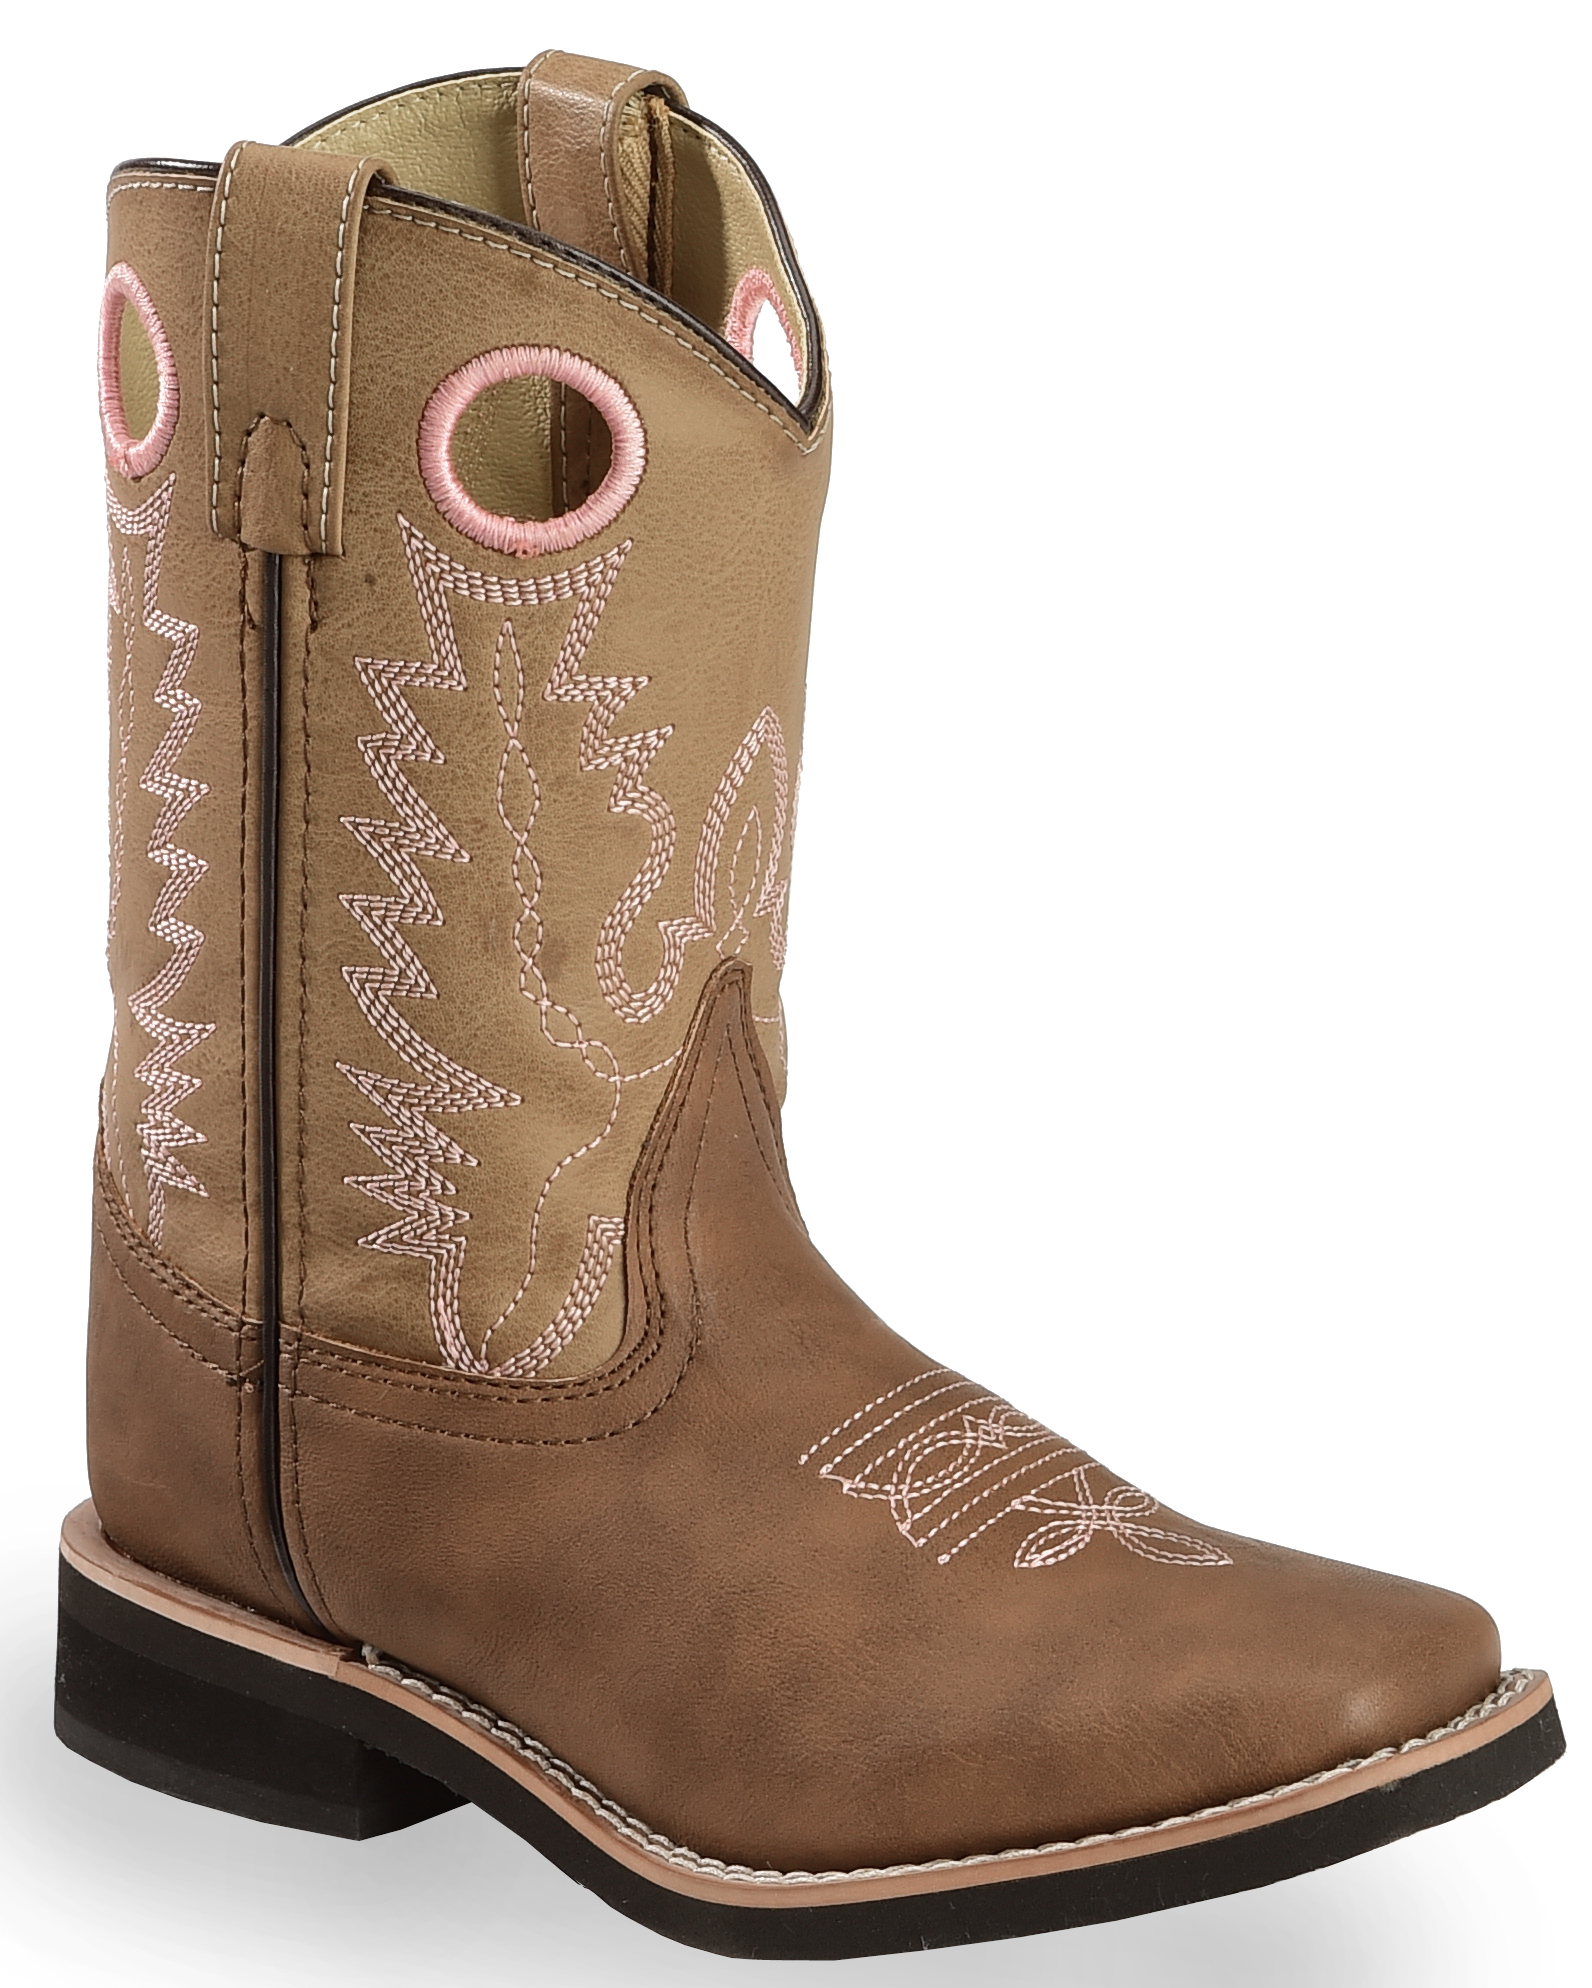 Kids' Boots & Shoes on Sale - Sheplers